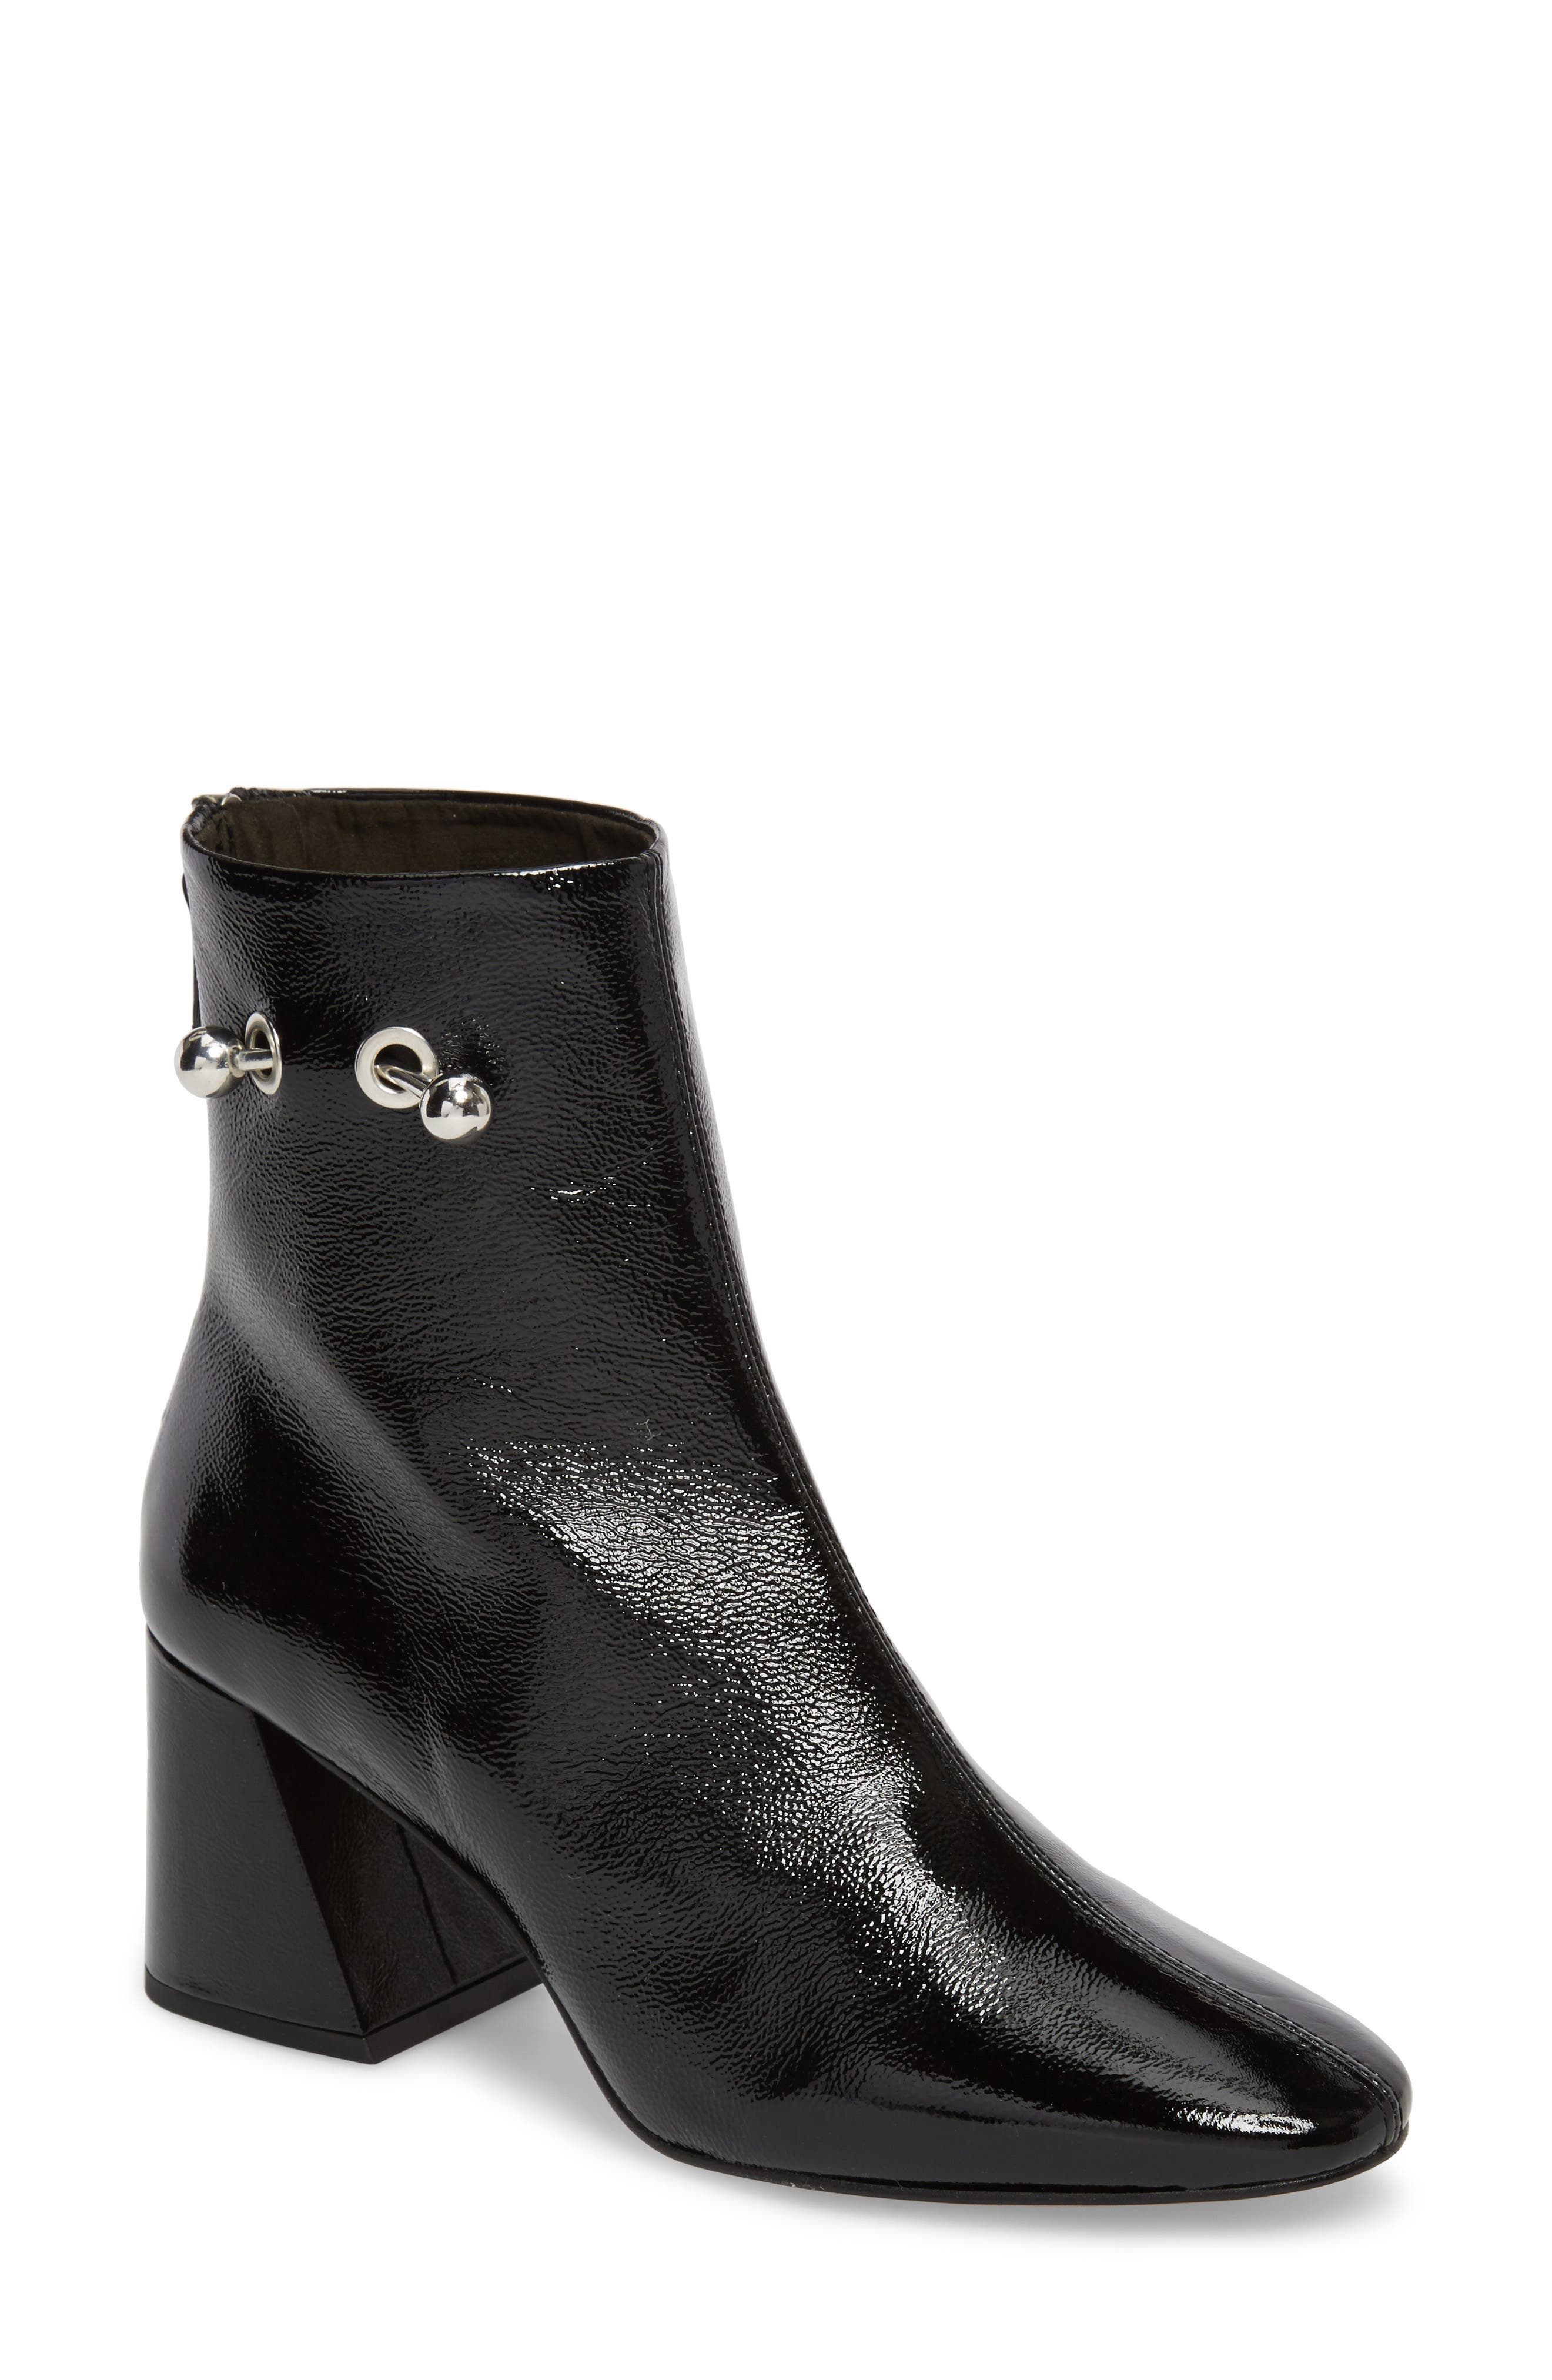 Mighty Flared Heel Bootie,                             Main thumbnail 1, color,                             Black